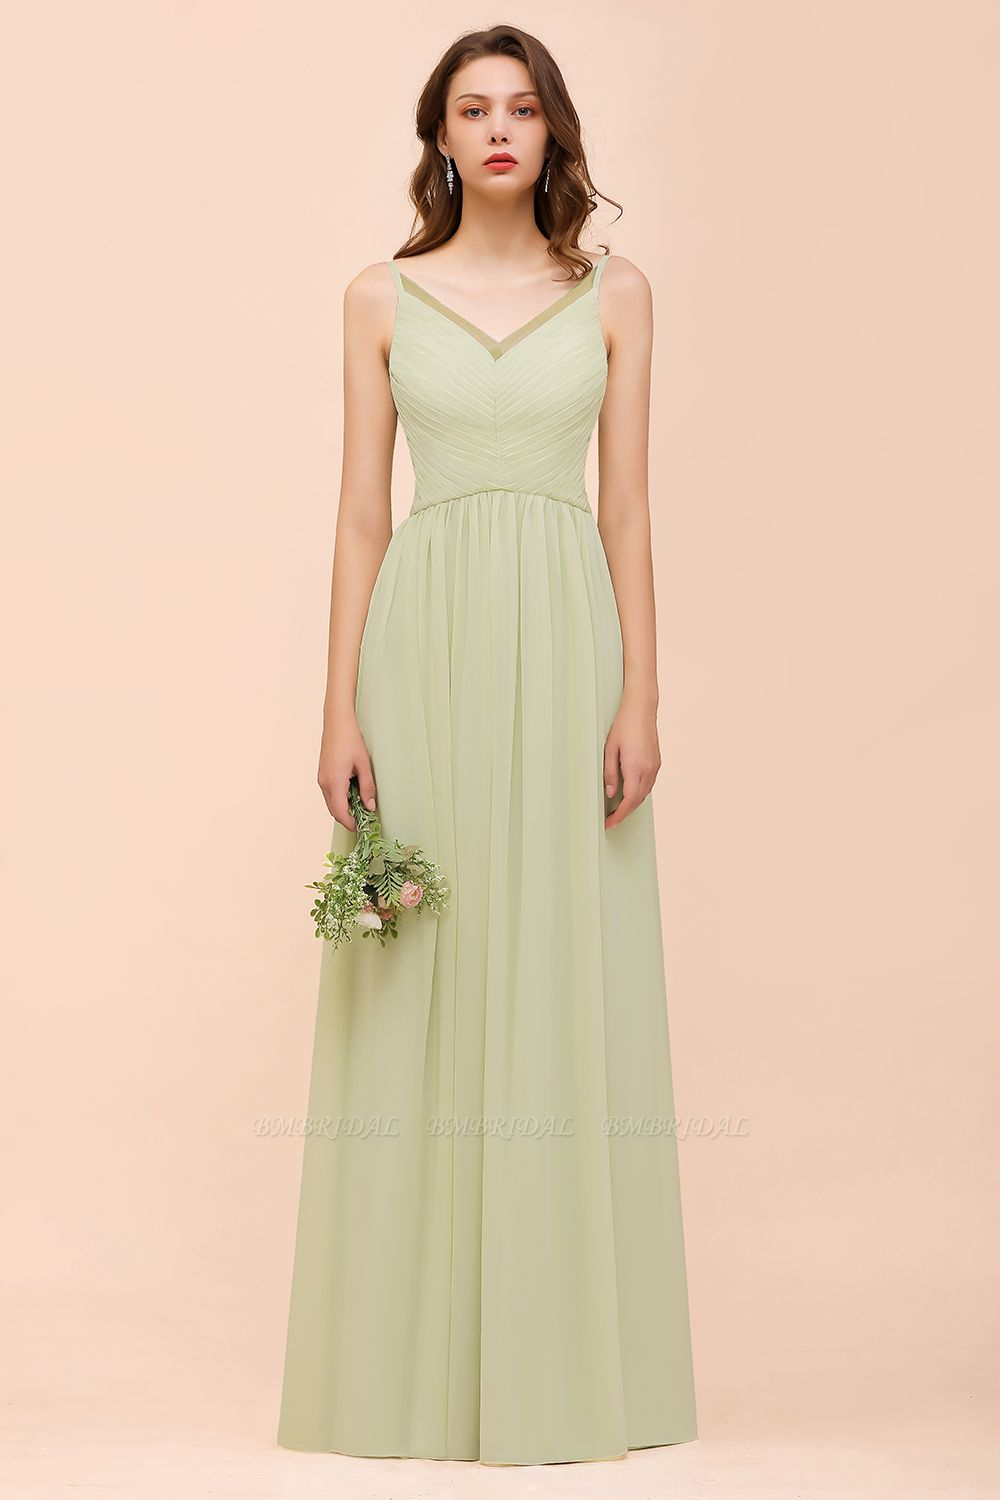 BMbridal Popular V-Neck Sage Chiffon Affordable Bridesmaid Dress with Low Back